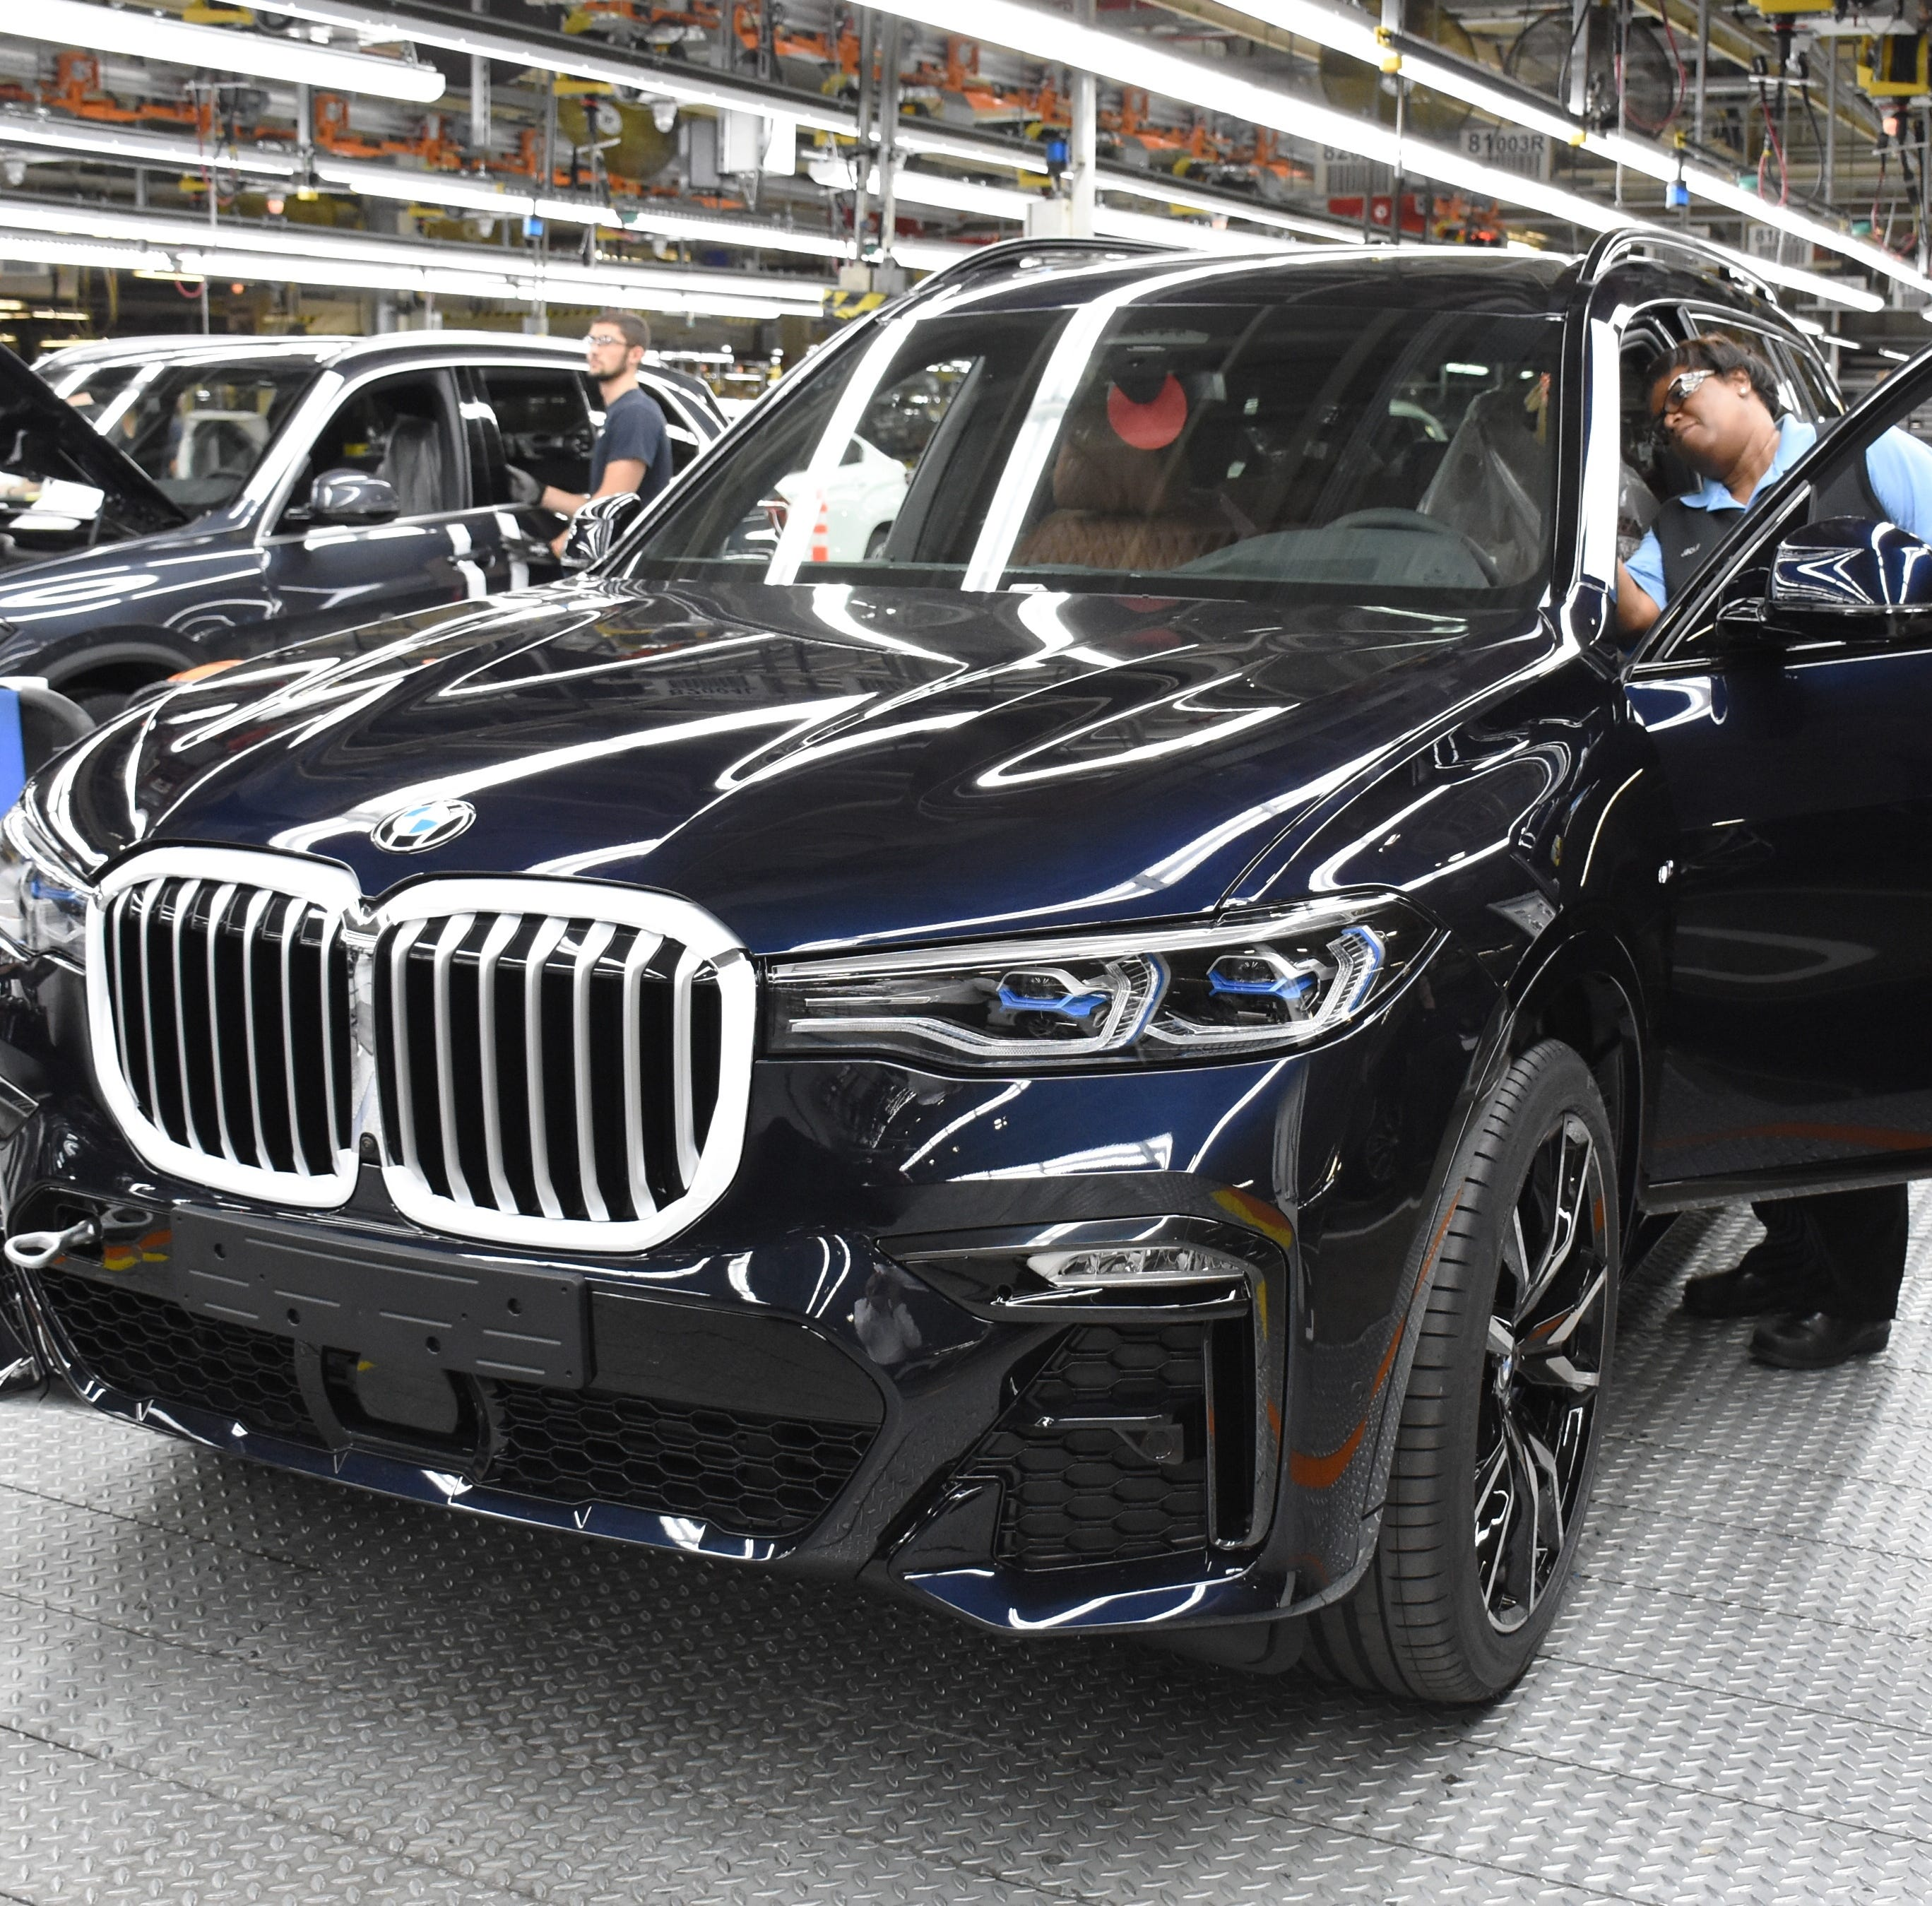 BMW freezes pension plans for US employees; shifts to 401(k)-style plans for all